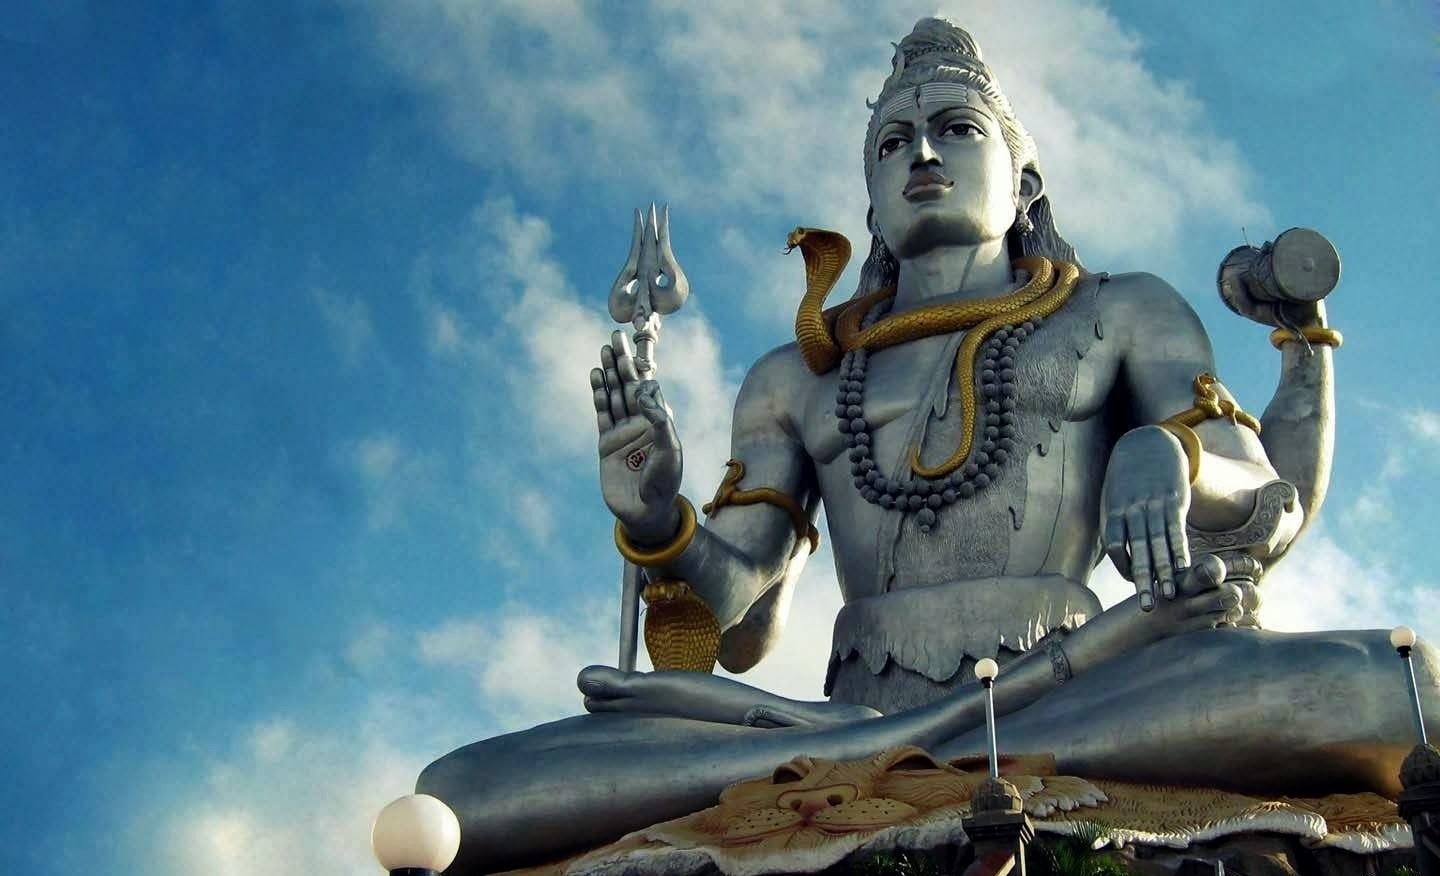 Happy Maha Shivaratri 2014 HD Wallpapers and Images Lord shiva ji